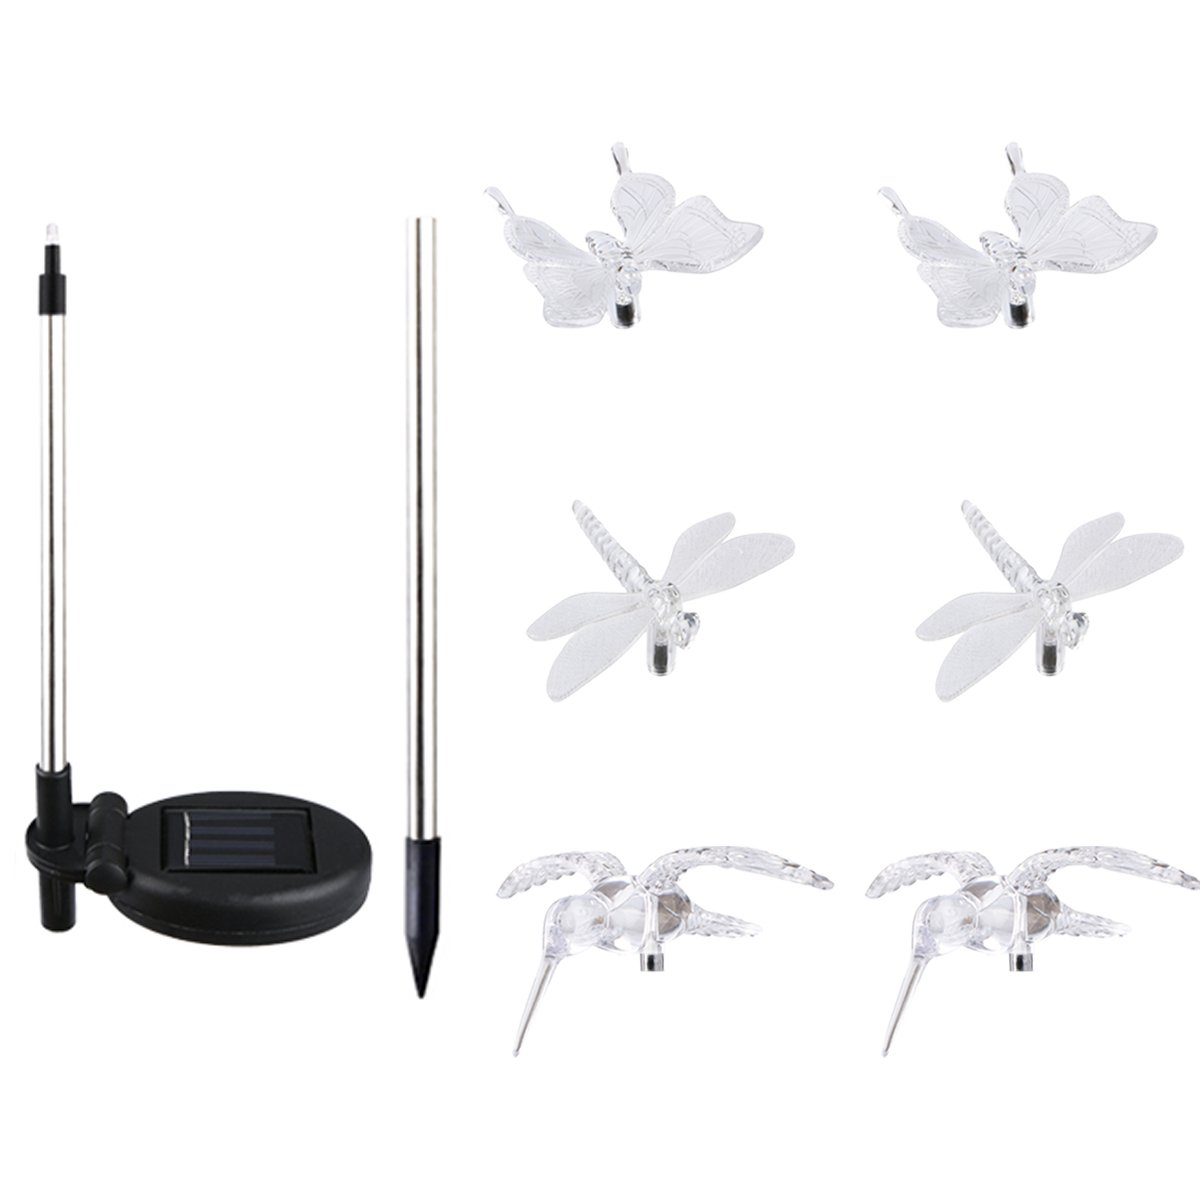 Solar Path Lights Yard Lights Led Lawn Lamp Solar Powered Outdoor Hummingbird Butterfly & Dragonfly Solar Garden Stake Light with Color Changing LED Light, 6 Pack Aunifun